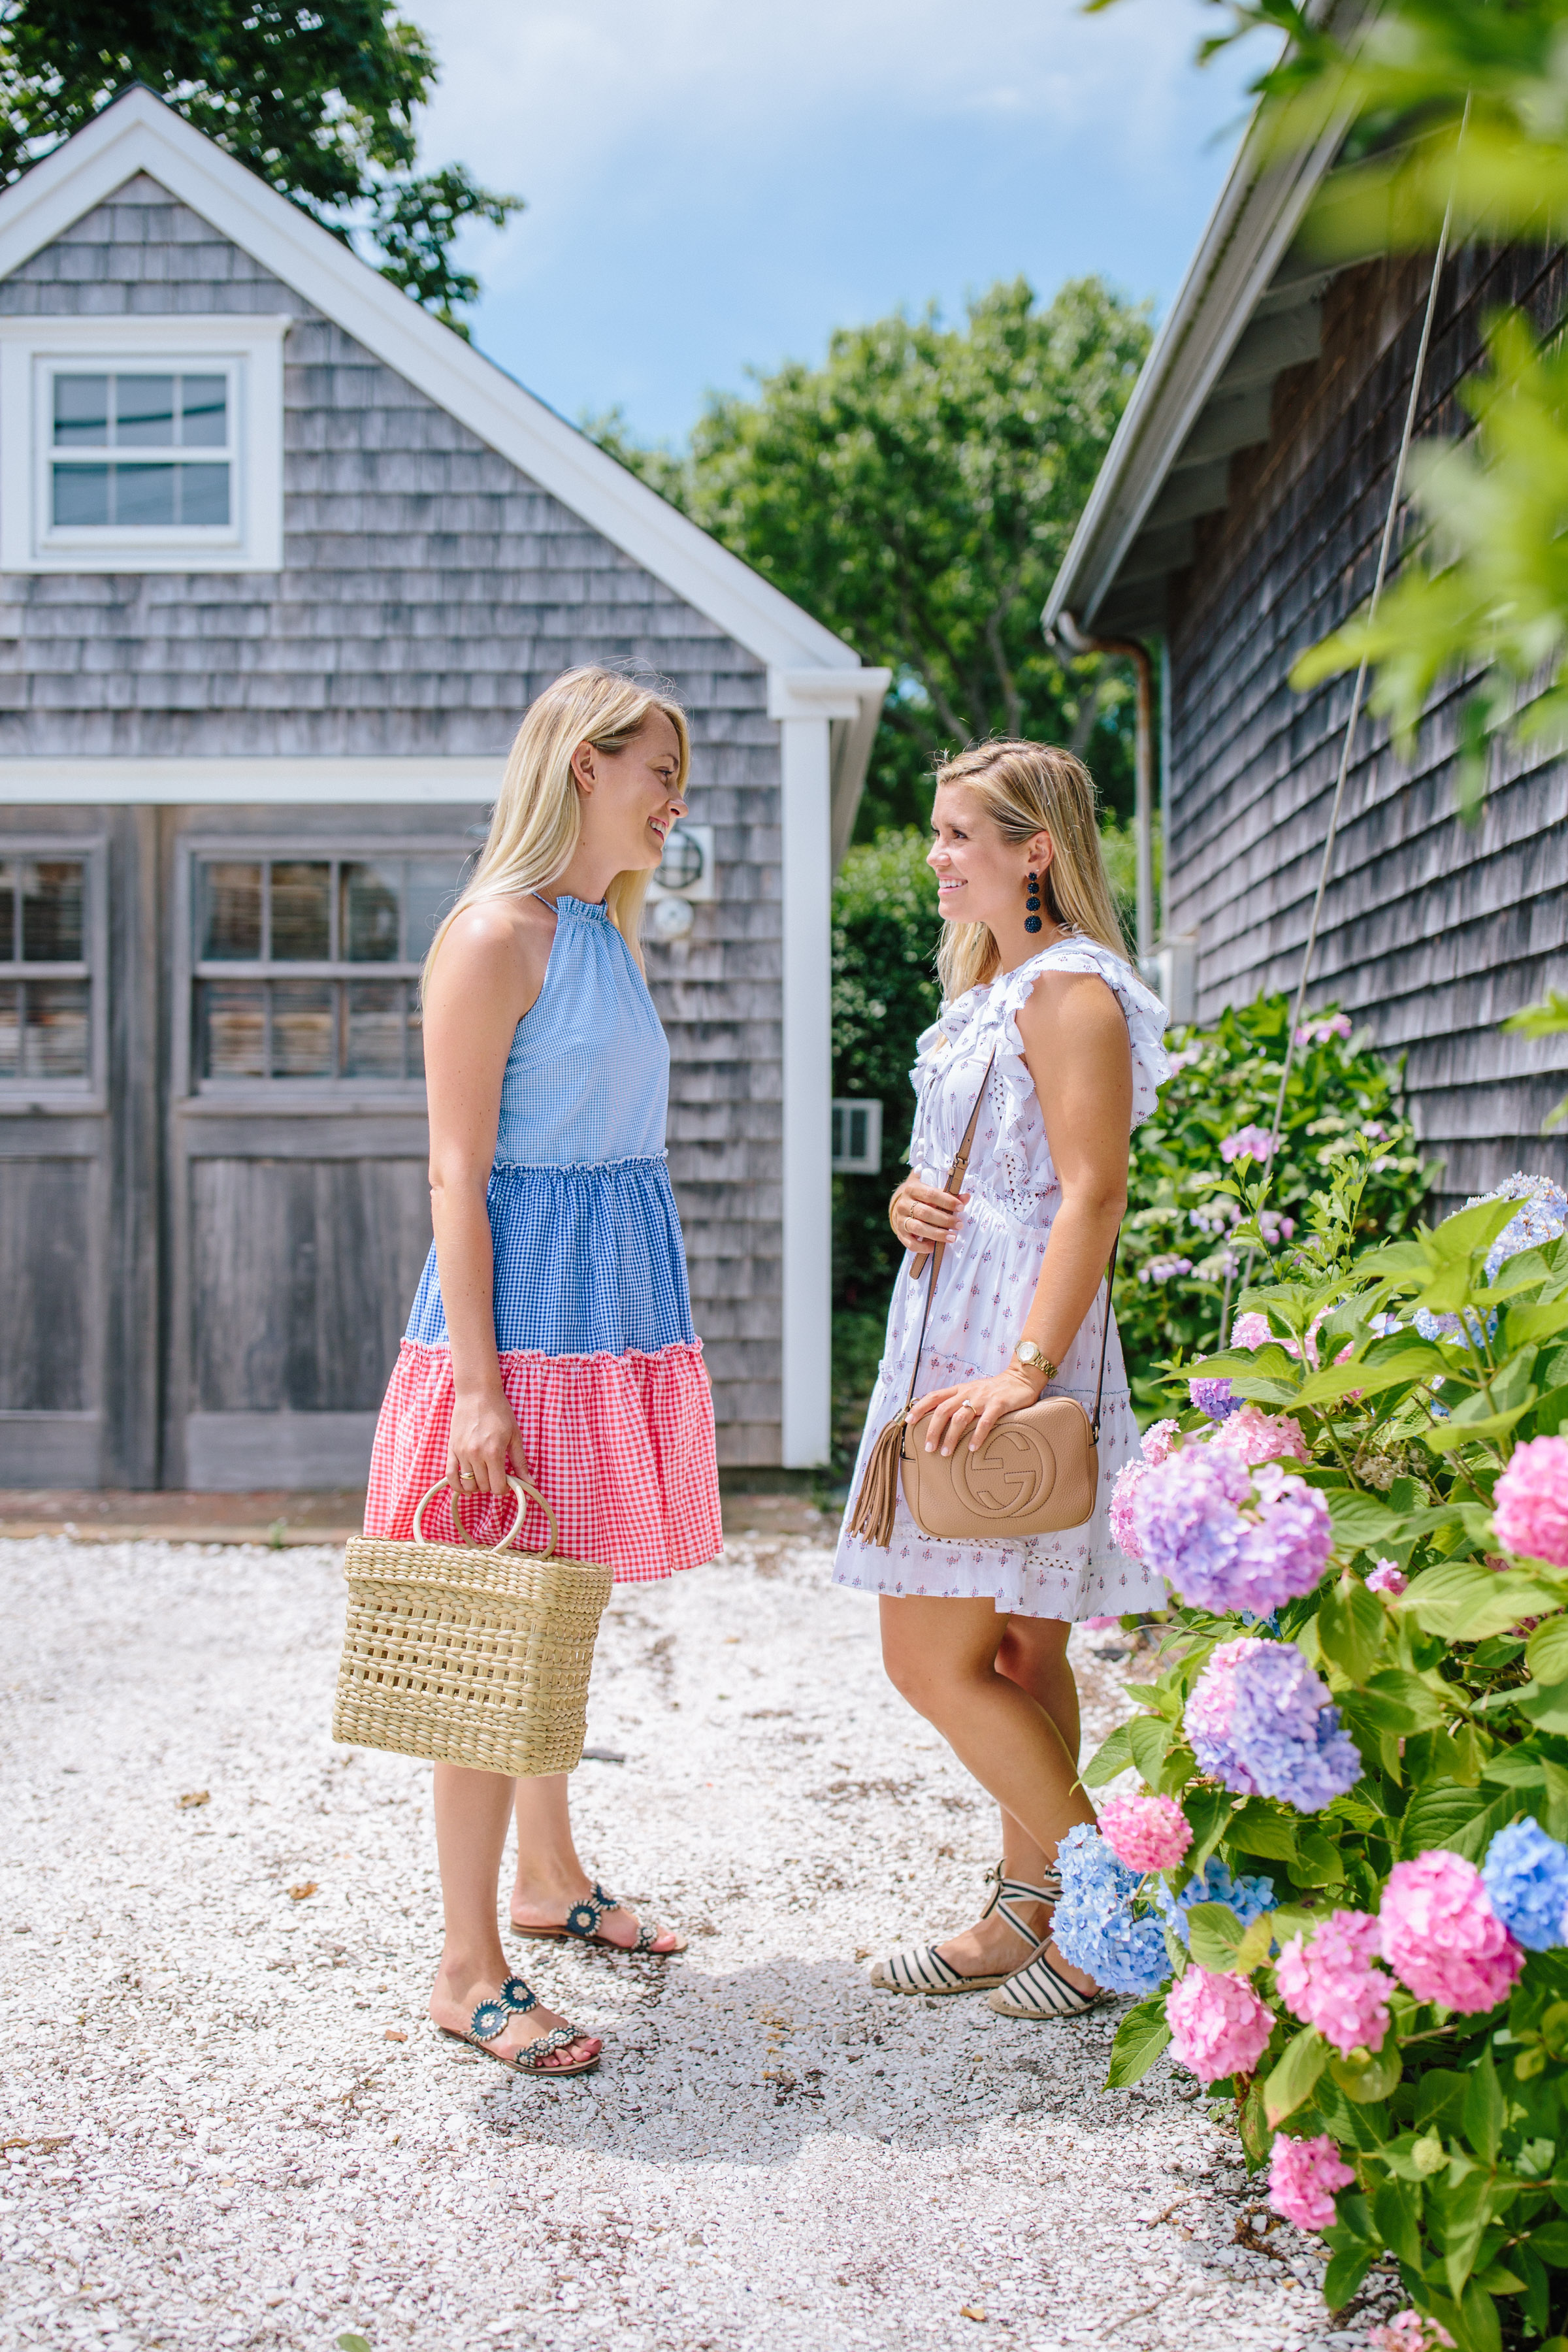 A Travel Guide for the Sconset neighborhood on Nantucket including what to do, what to wear, where to eat, and where to shop // Rhyme & Reason